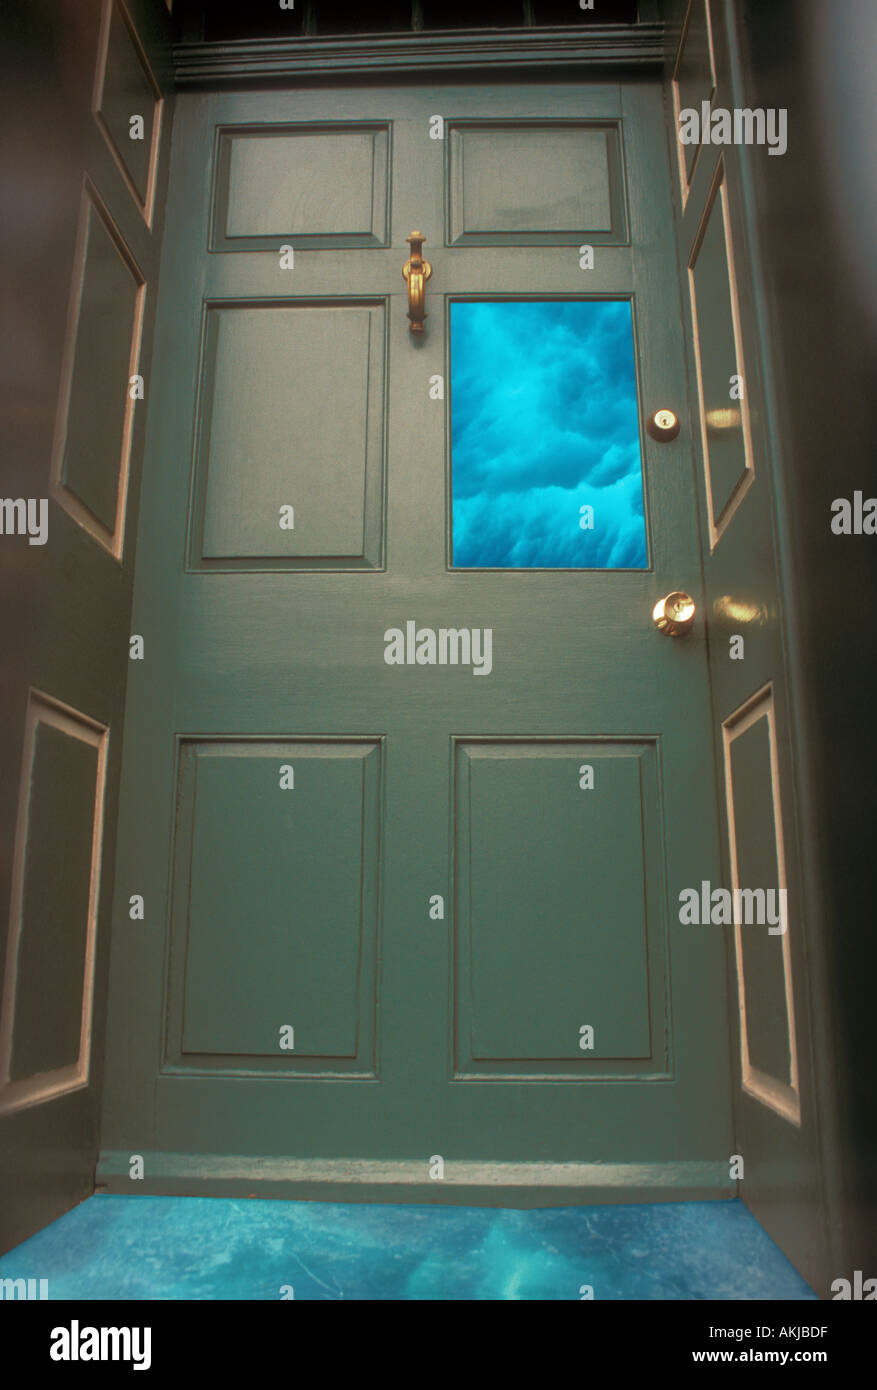 Strange Door & Strange Door Stock Photo: 2780126 - Alamy